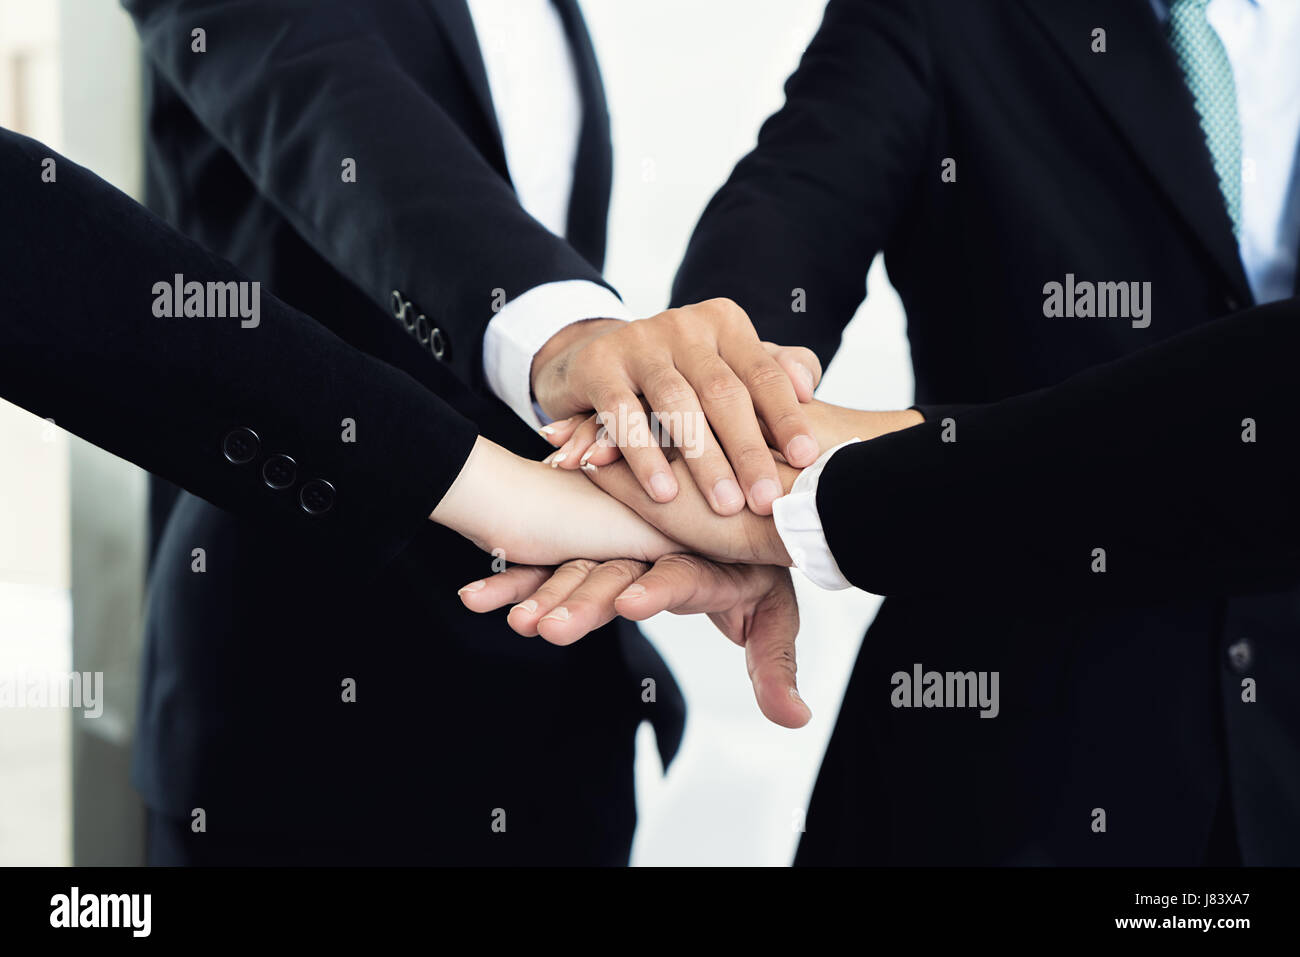 Close up of business partners making pile of hands at meeting. Business people collaboration teamwork union concept. - Stock Image